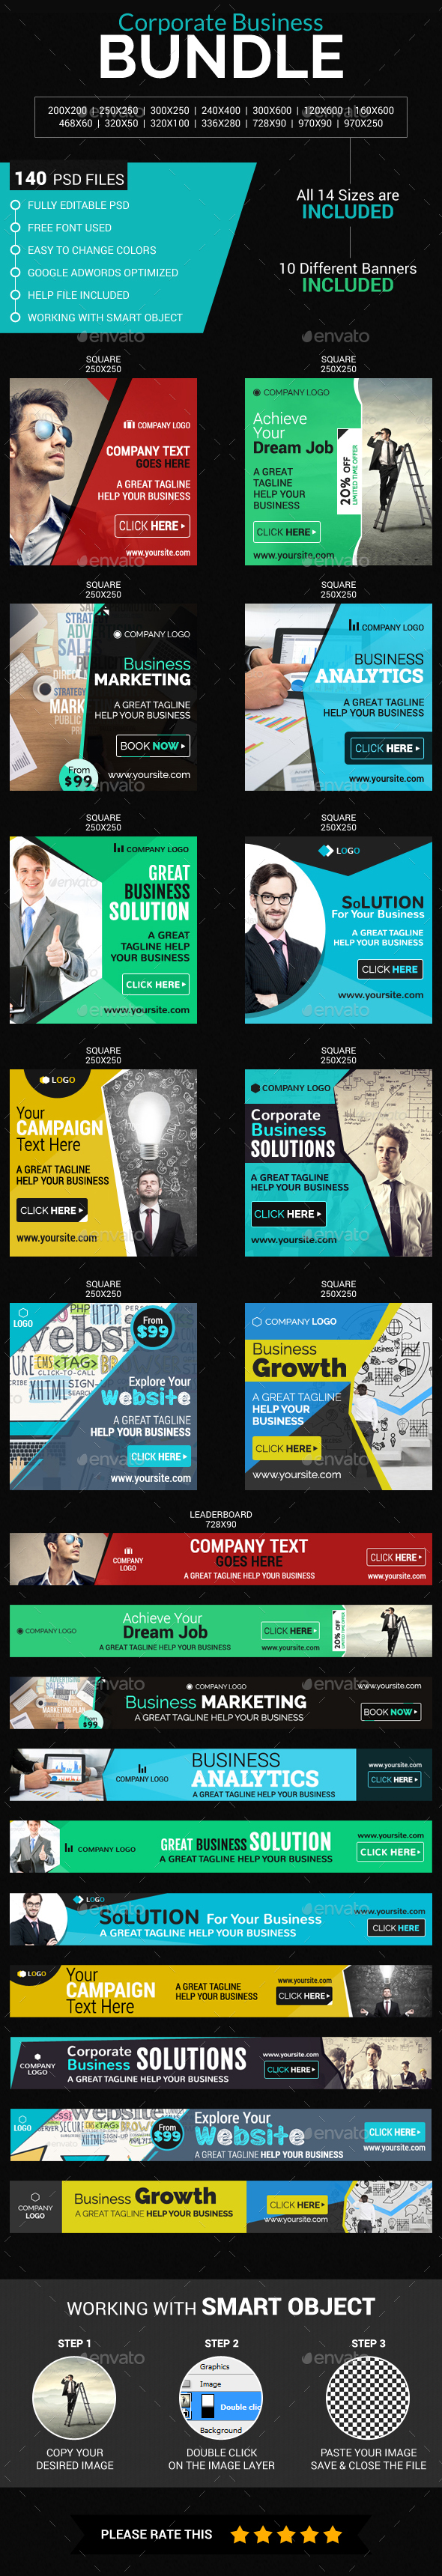 Corporate Business Bundle Banners - Banners & Ads Web Elements